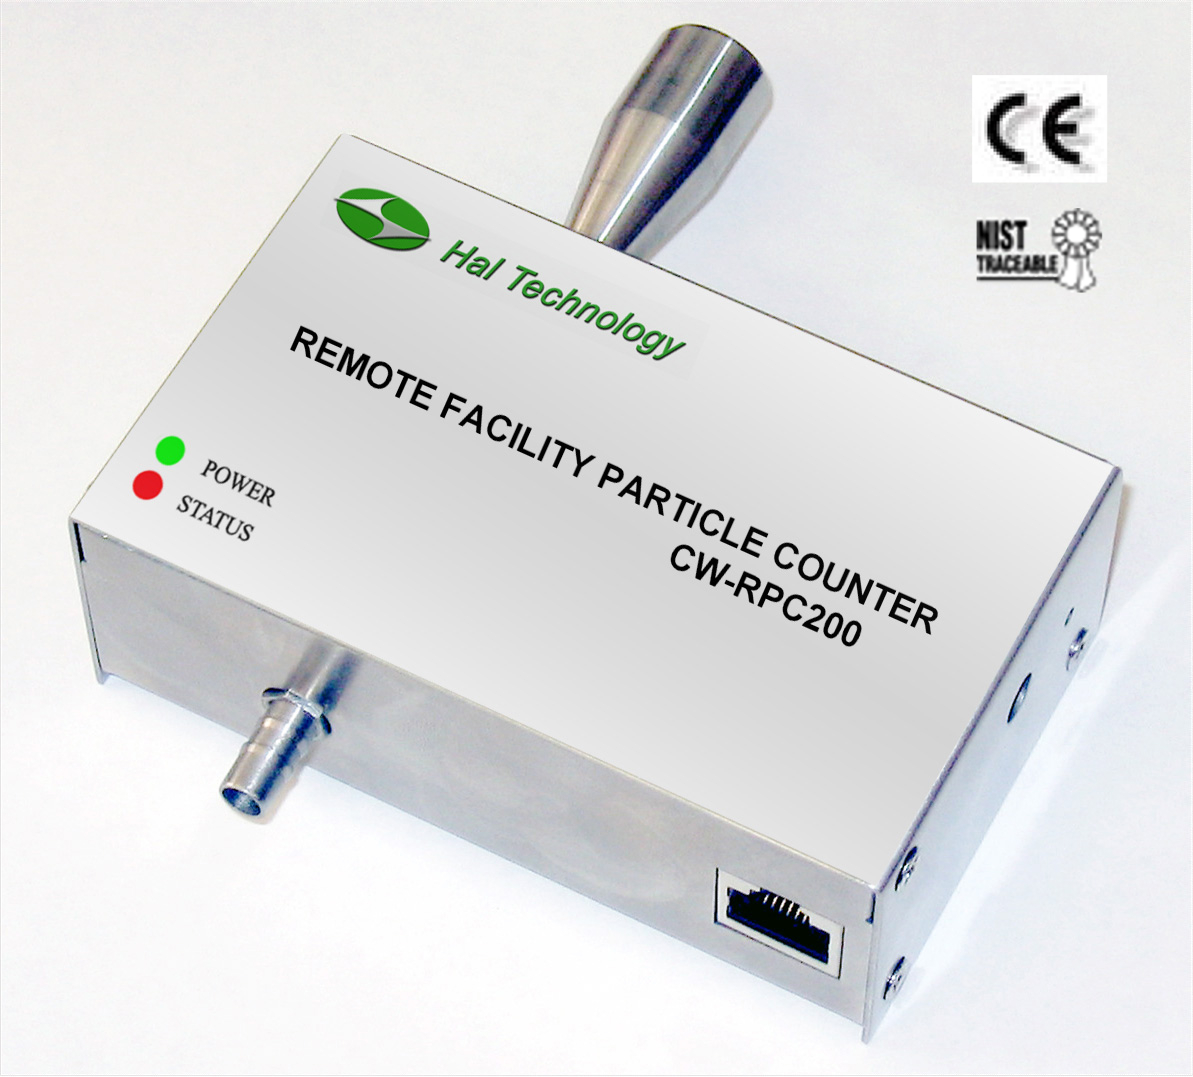 Hal Rpc200 Power Over Ethernet Technology Is A That Allows Devices Such